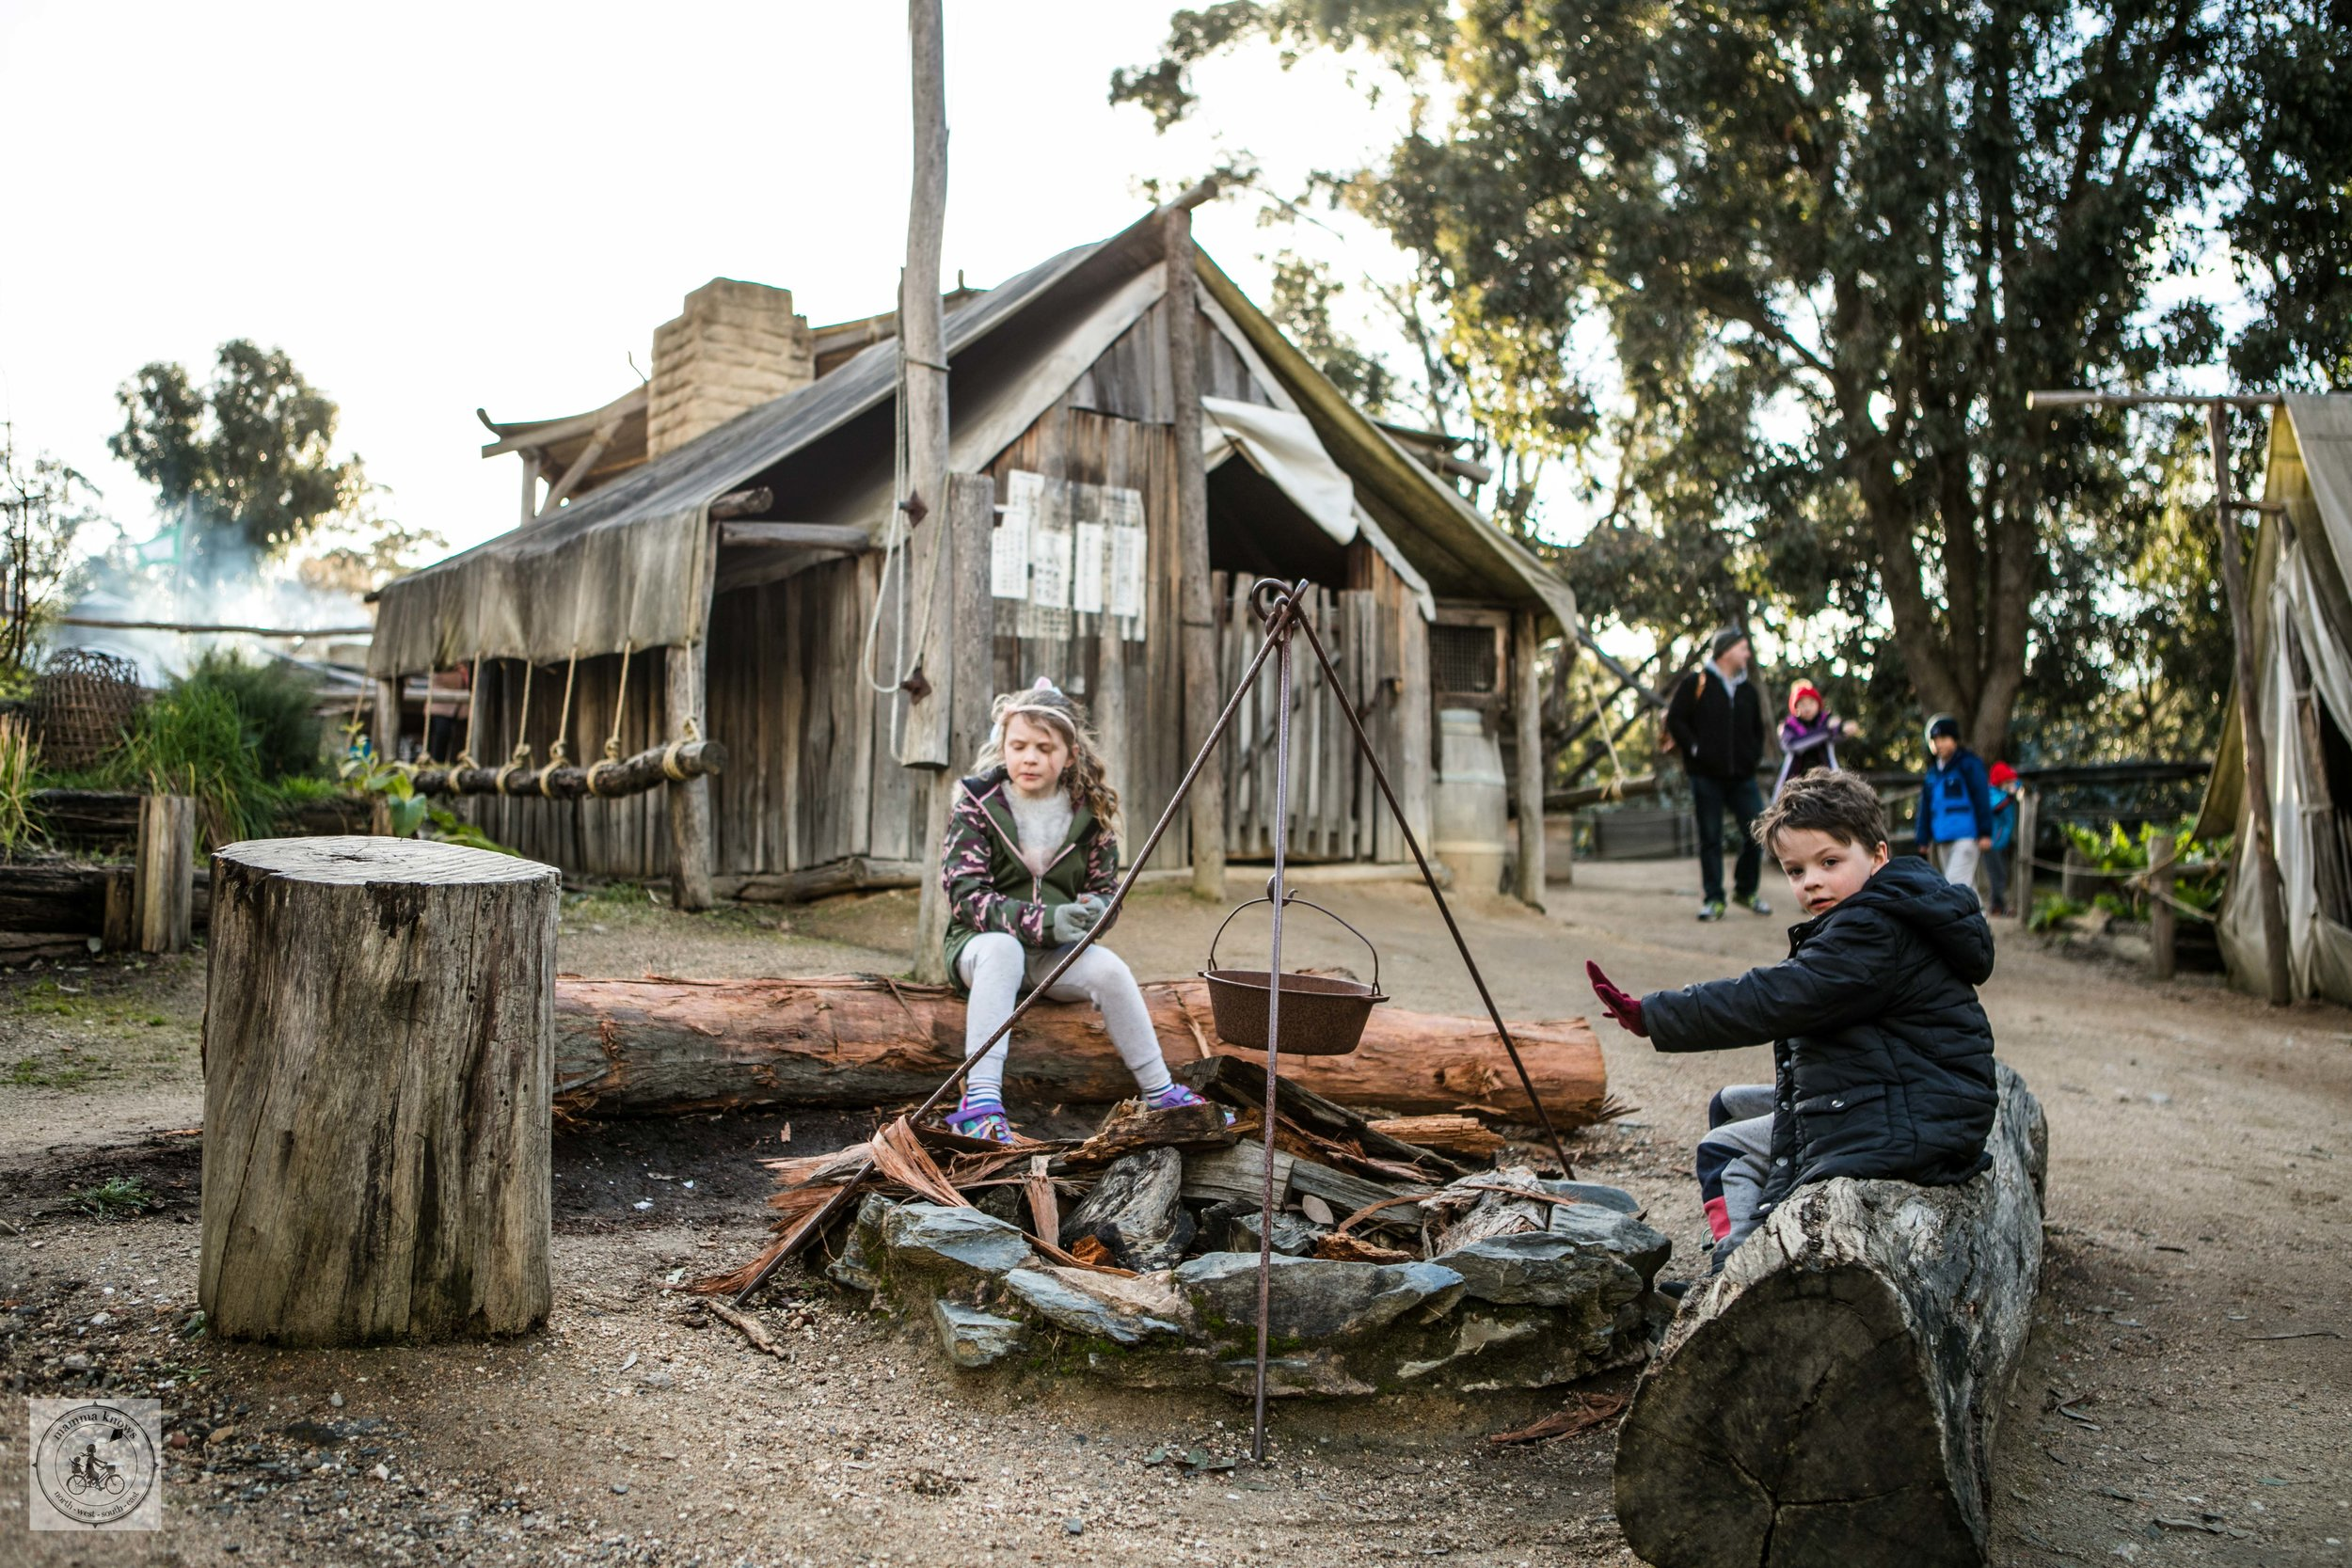 Sovereign Hill Mamma Knows West 2018 (31 of 94).jpg